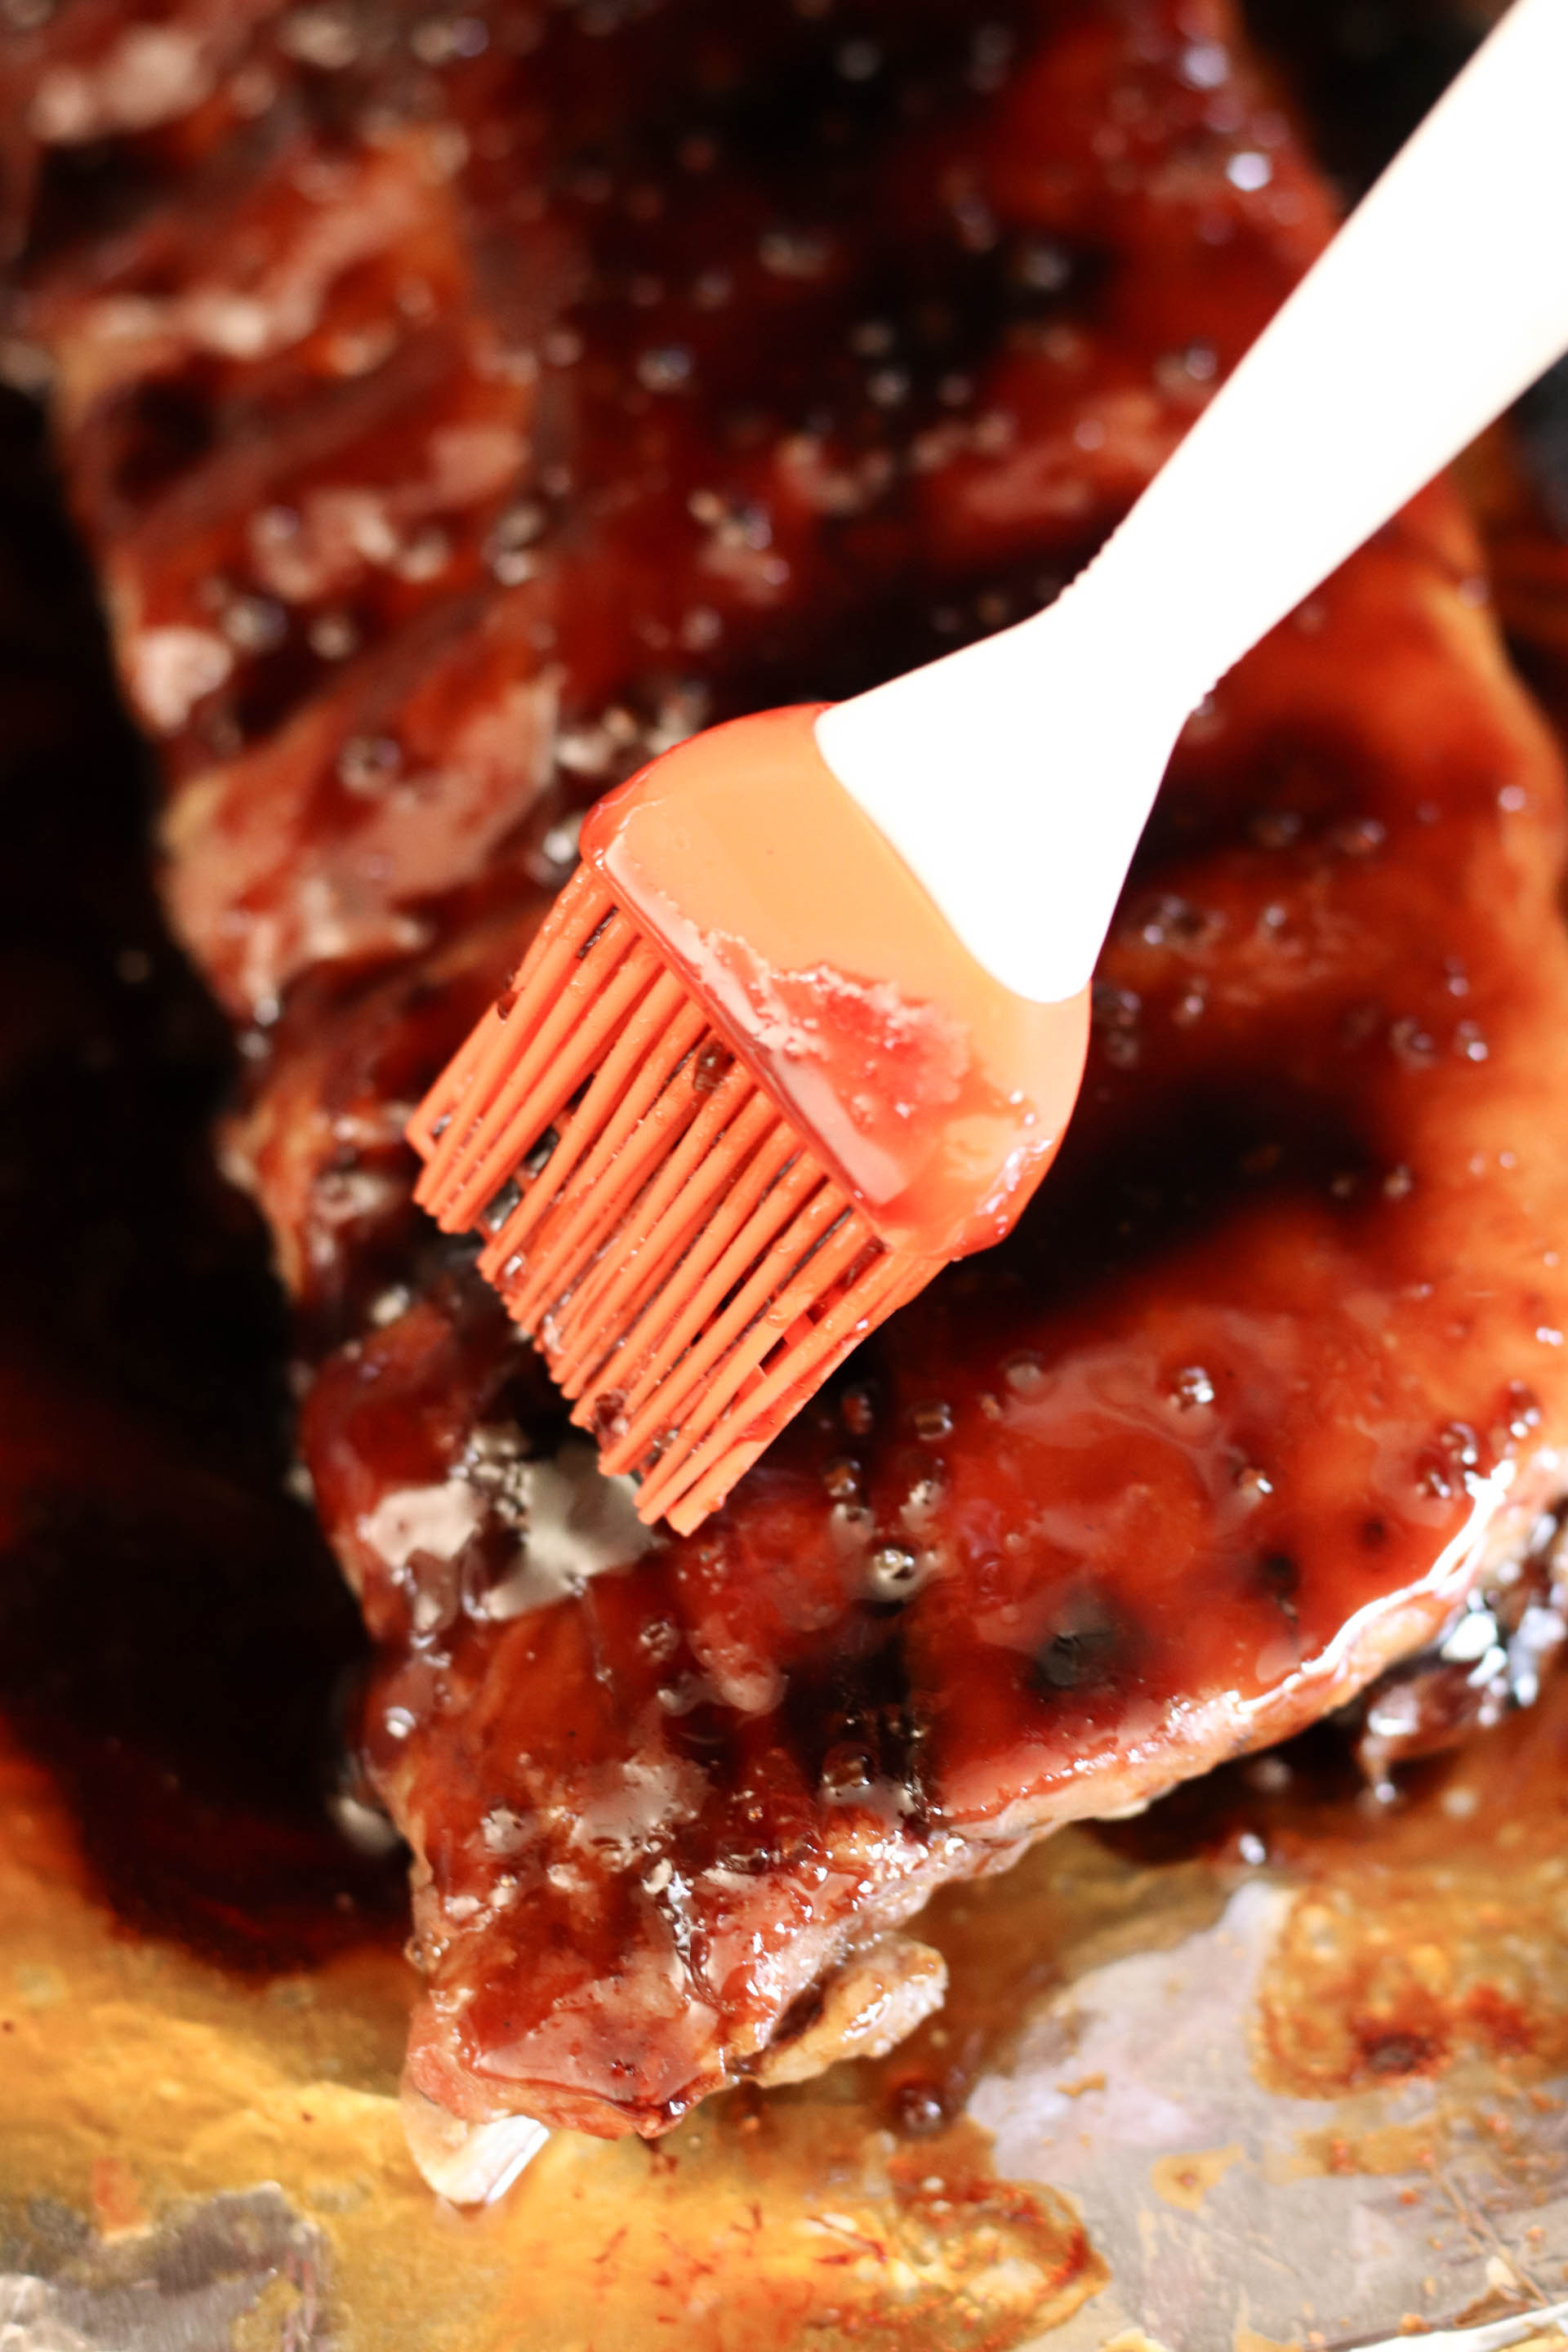 Brushing sticky sauce on ribs